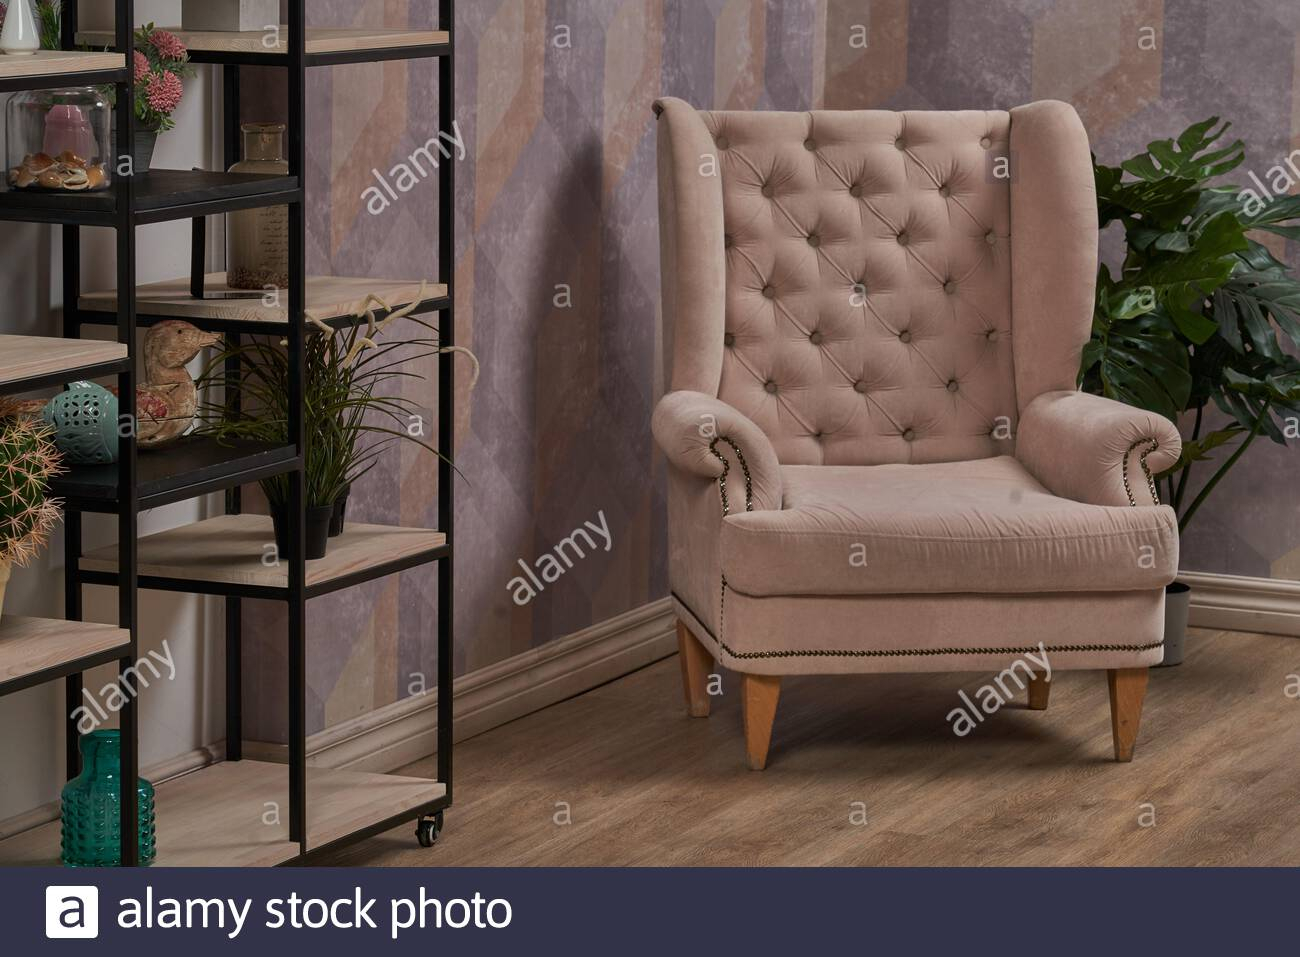 Comfortable Arm Chair In Interior Living Room With Pastel Pertaining To Live It Cozy Armchairs (View 15 of 15)